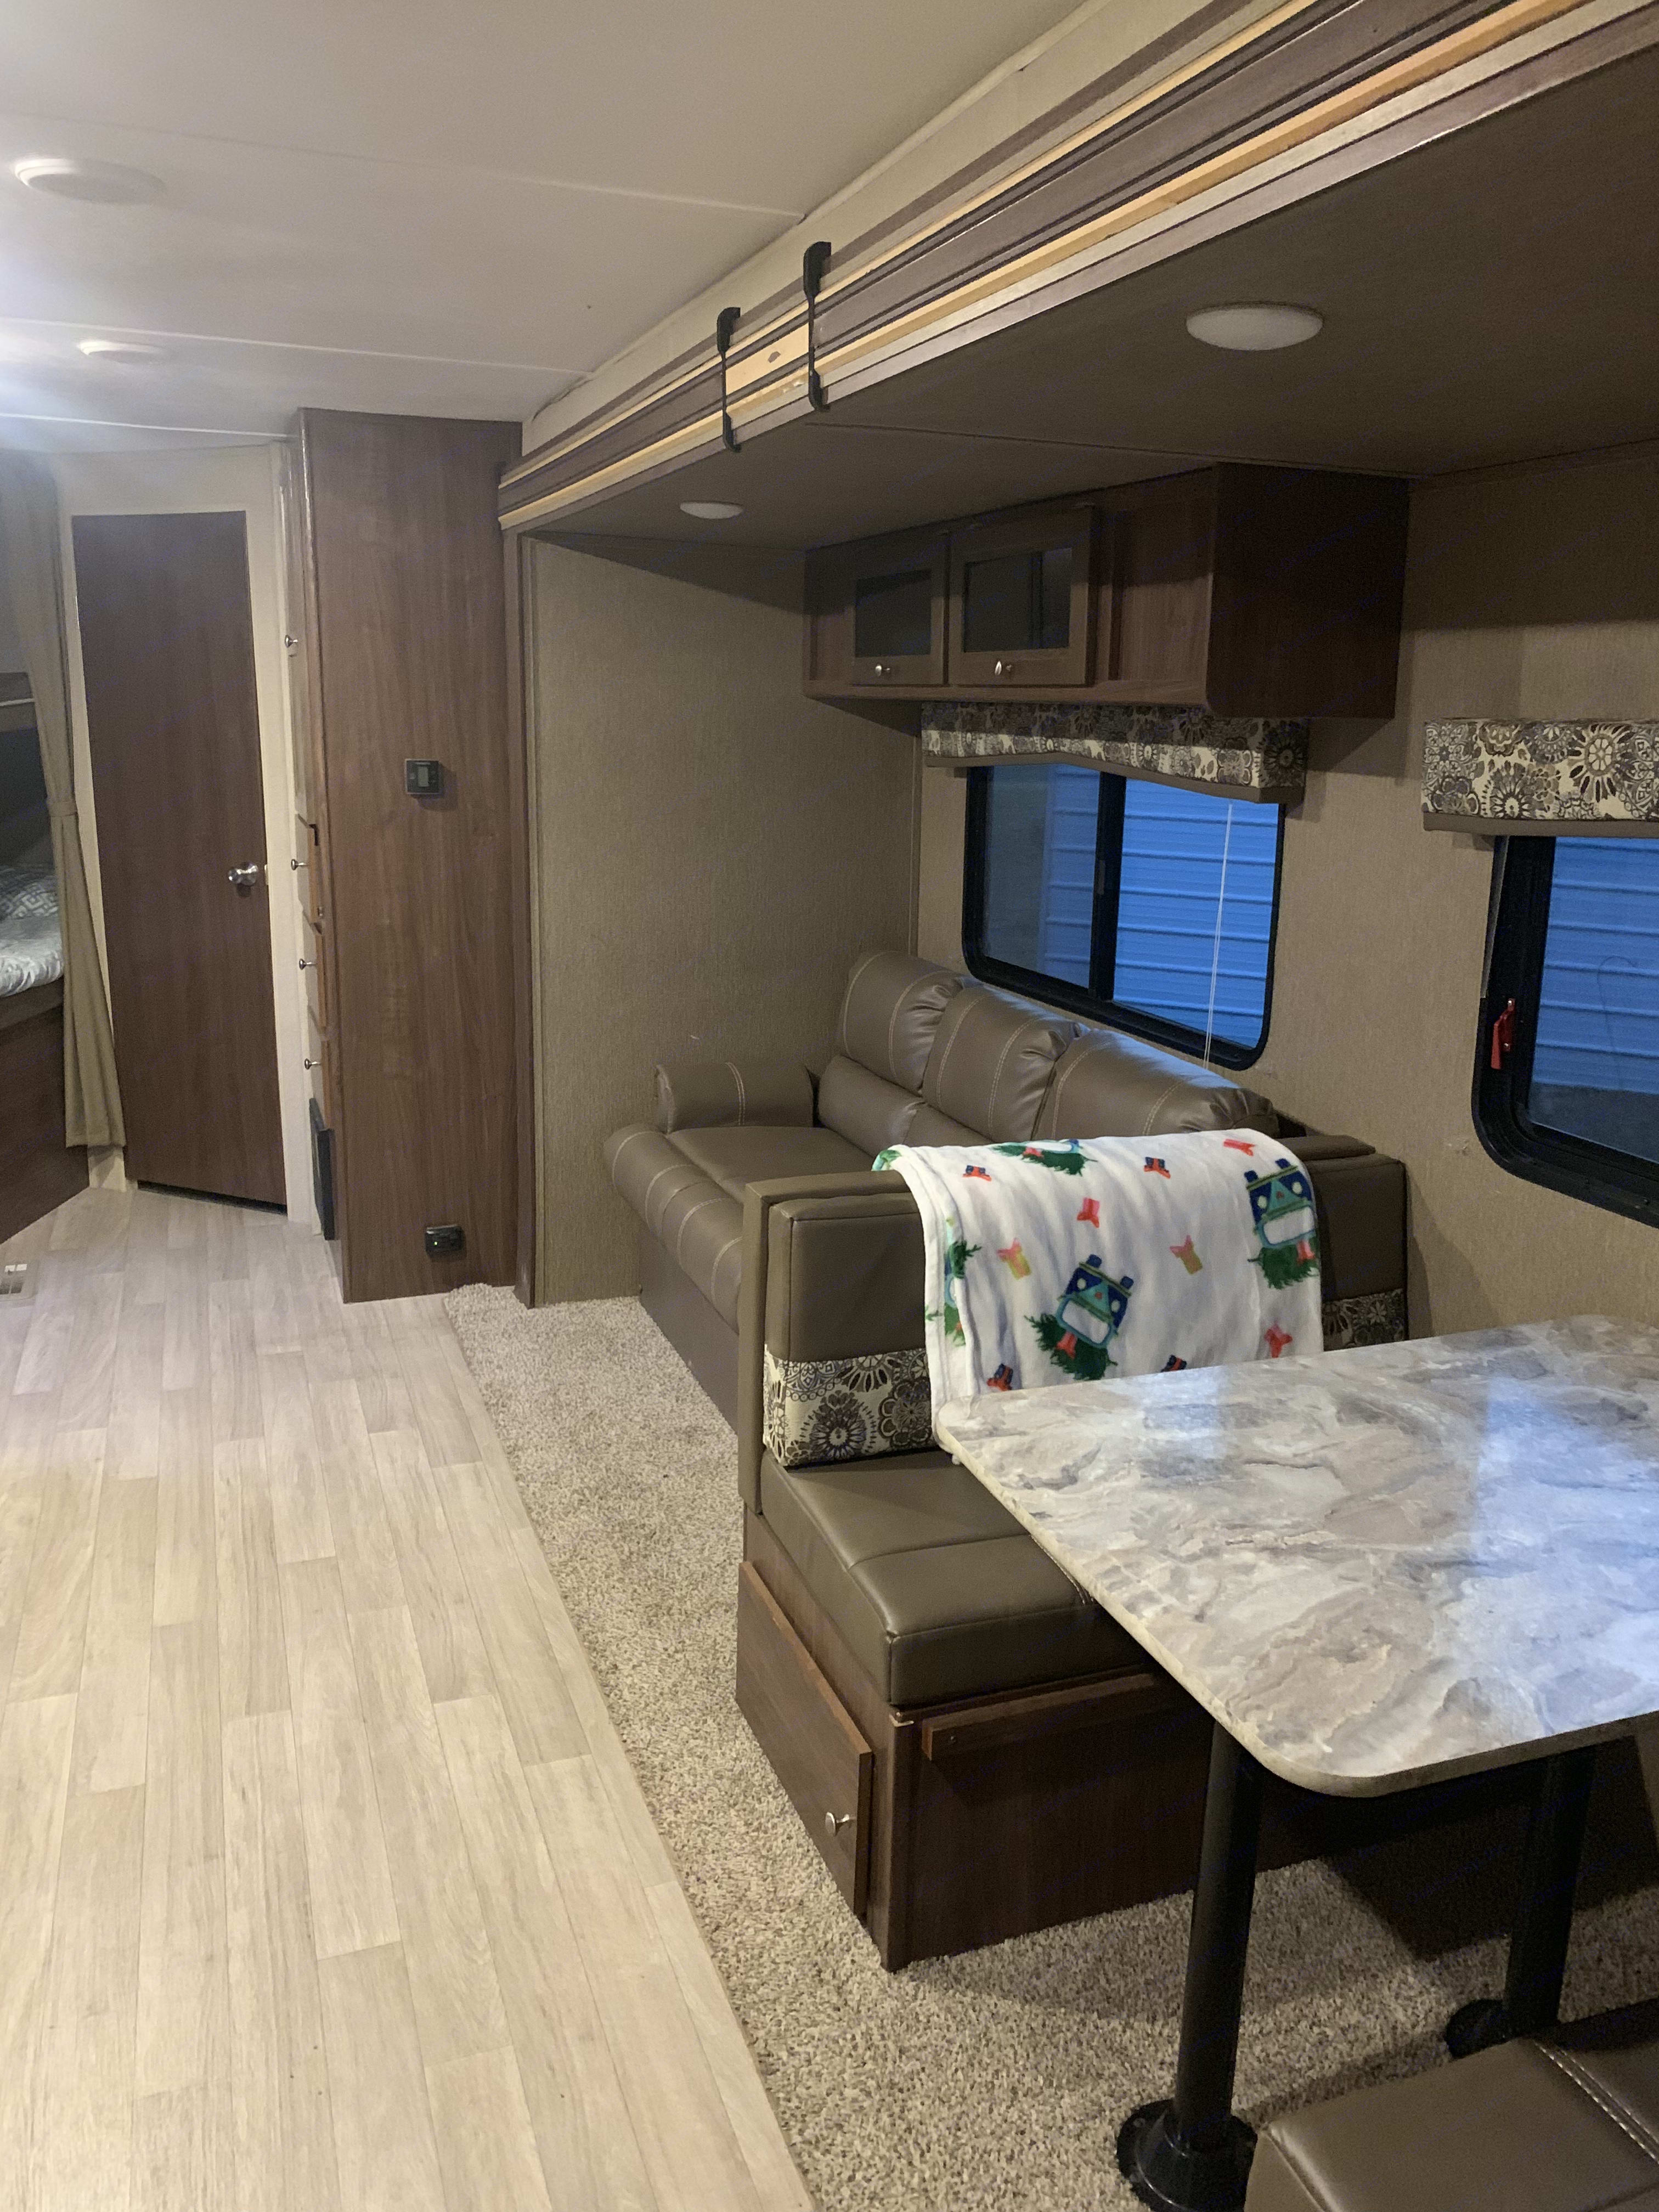 Dining table and couch- cabin area. Coleman Lantern Edition 2018